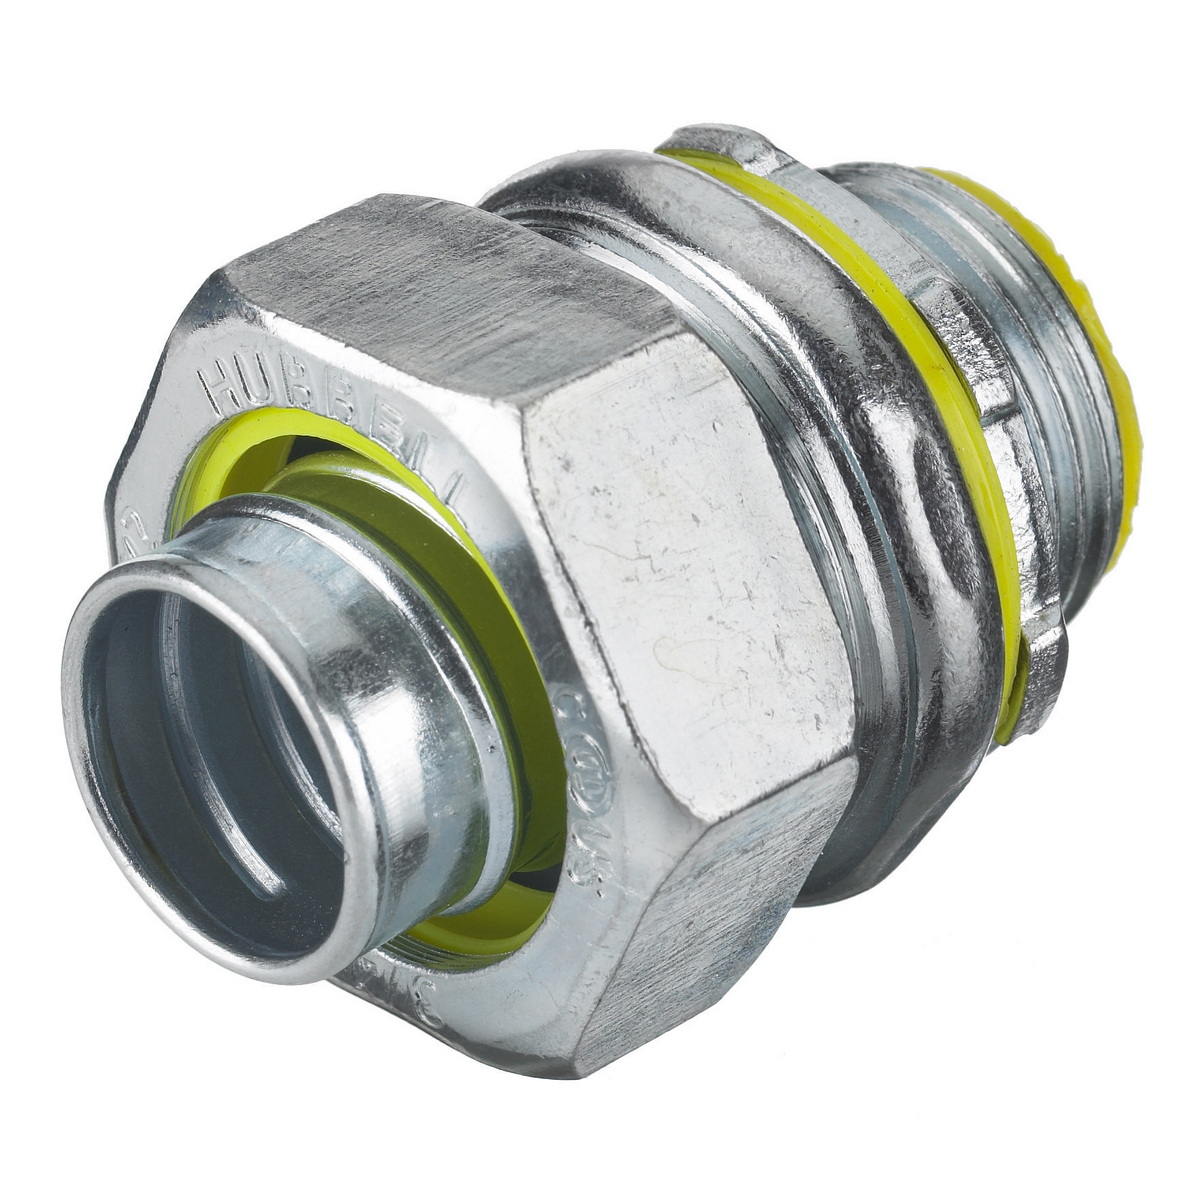 H0501 Liquidtight Fittings Conduit Wire Electrical Wiring